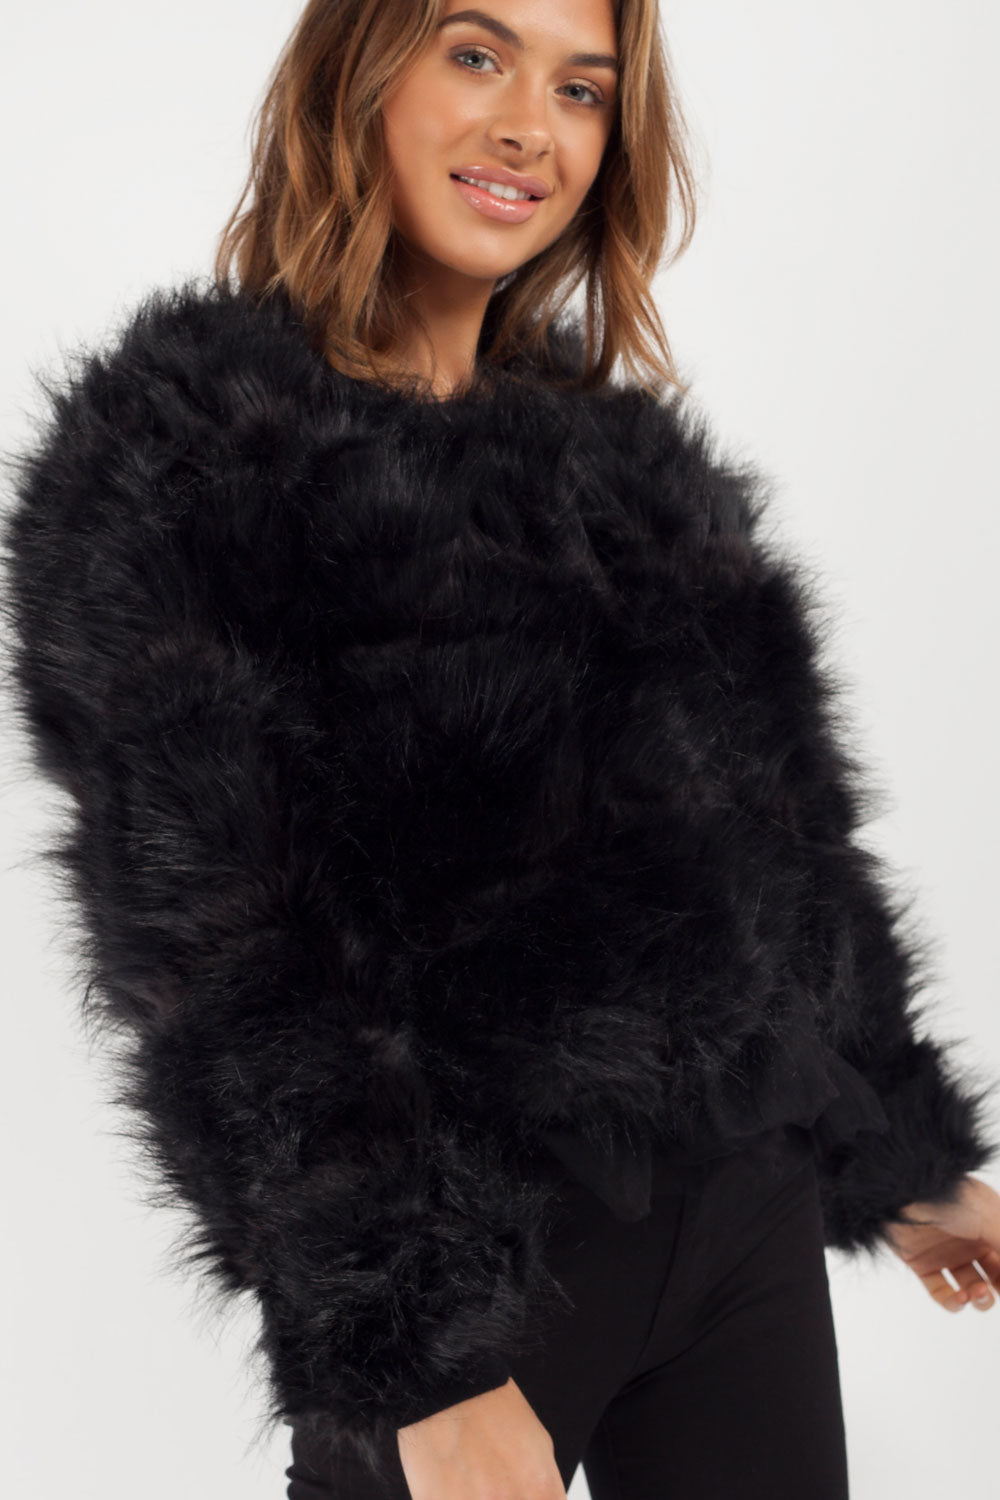 black faux fur coat on sale